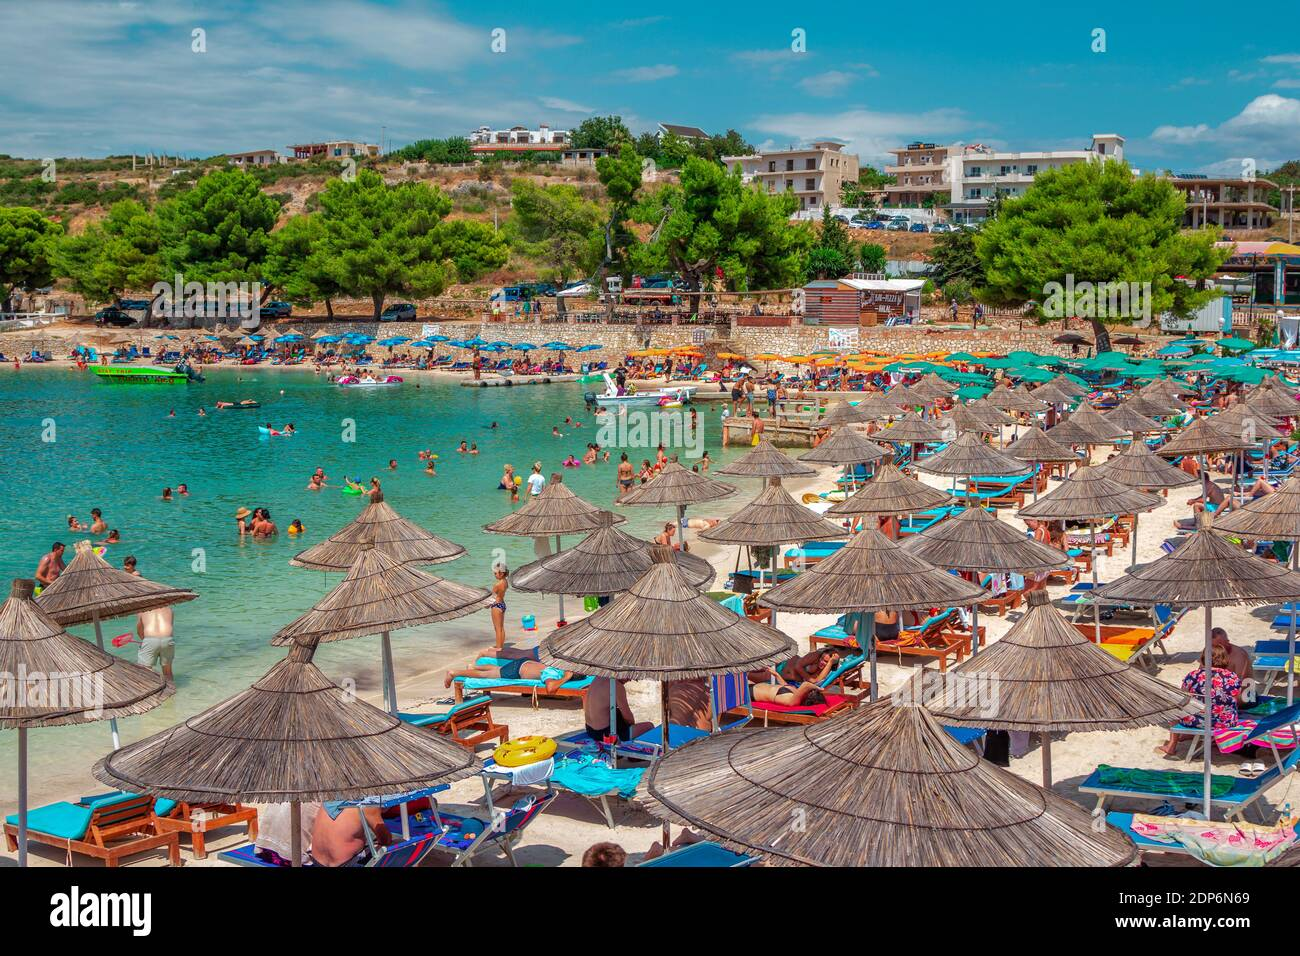 Ksamil, Albania - August 5, 2020: view of beautiful summer resort - sea bay with turquoise water, white sand, people, relaxing, tanning and swimming Stock Photo